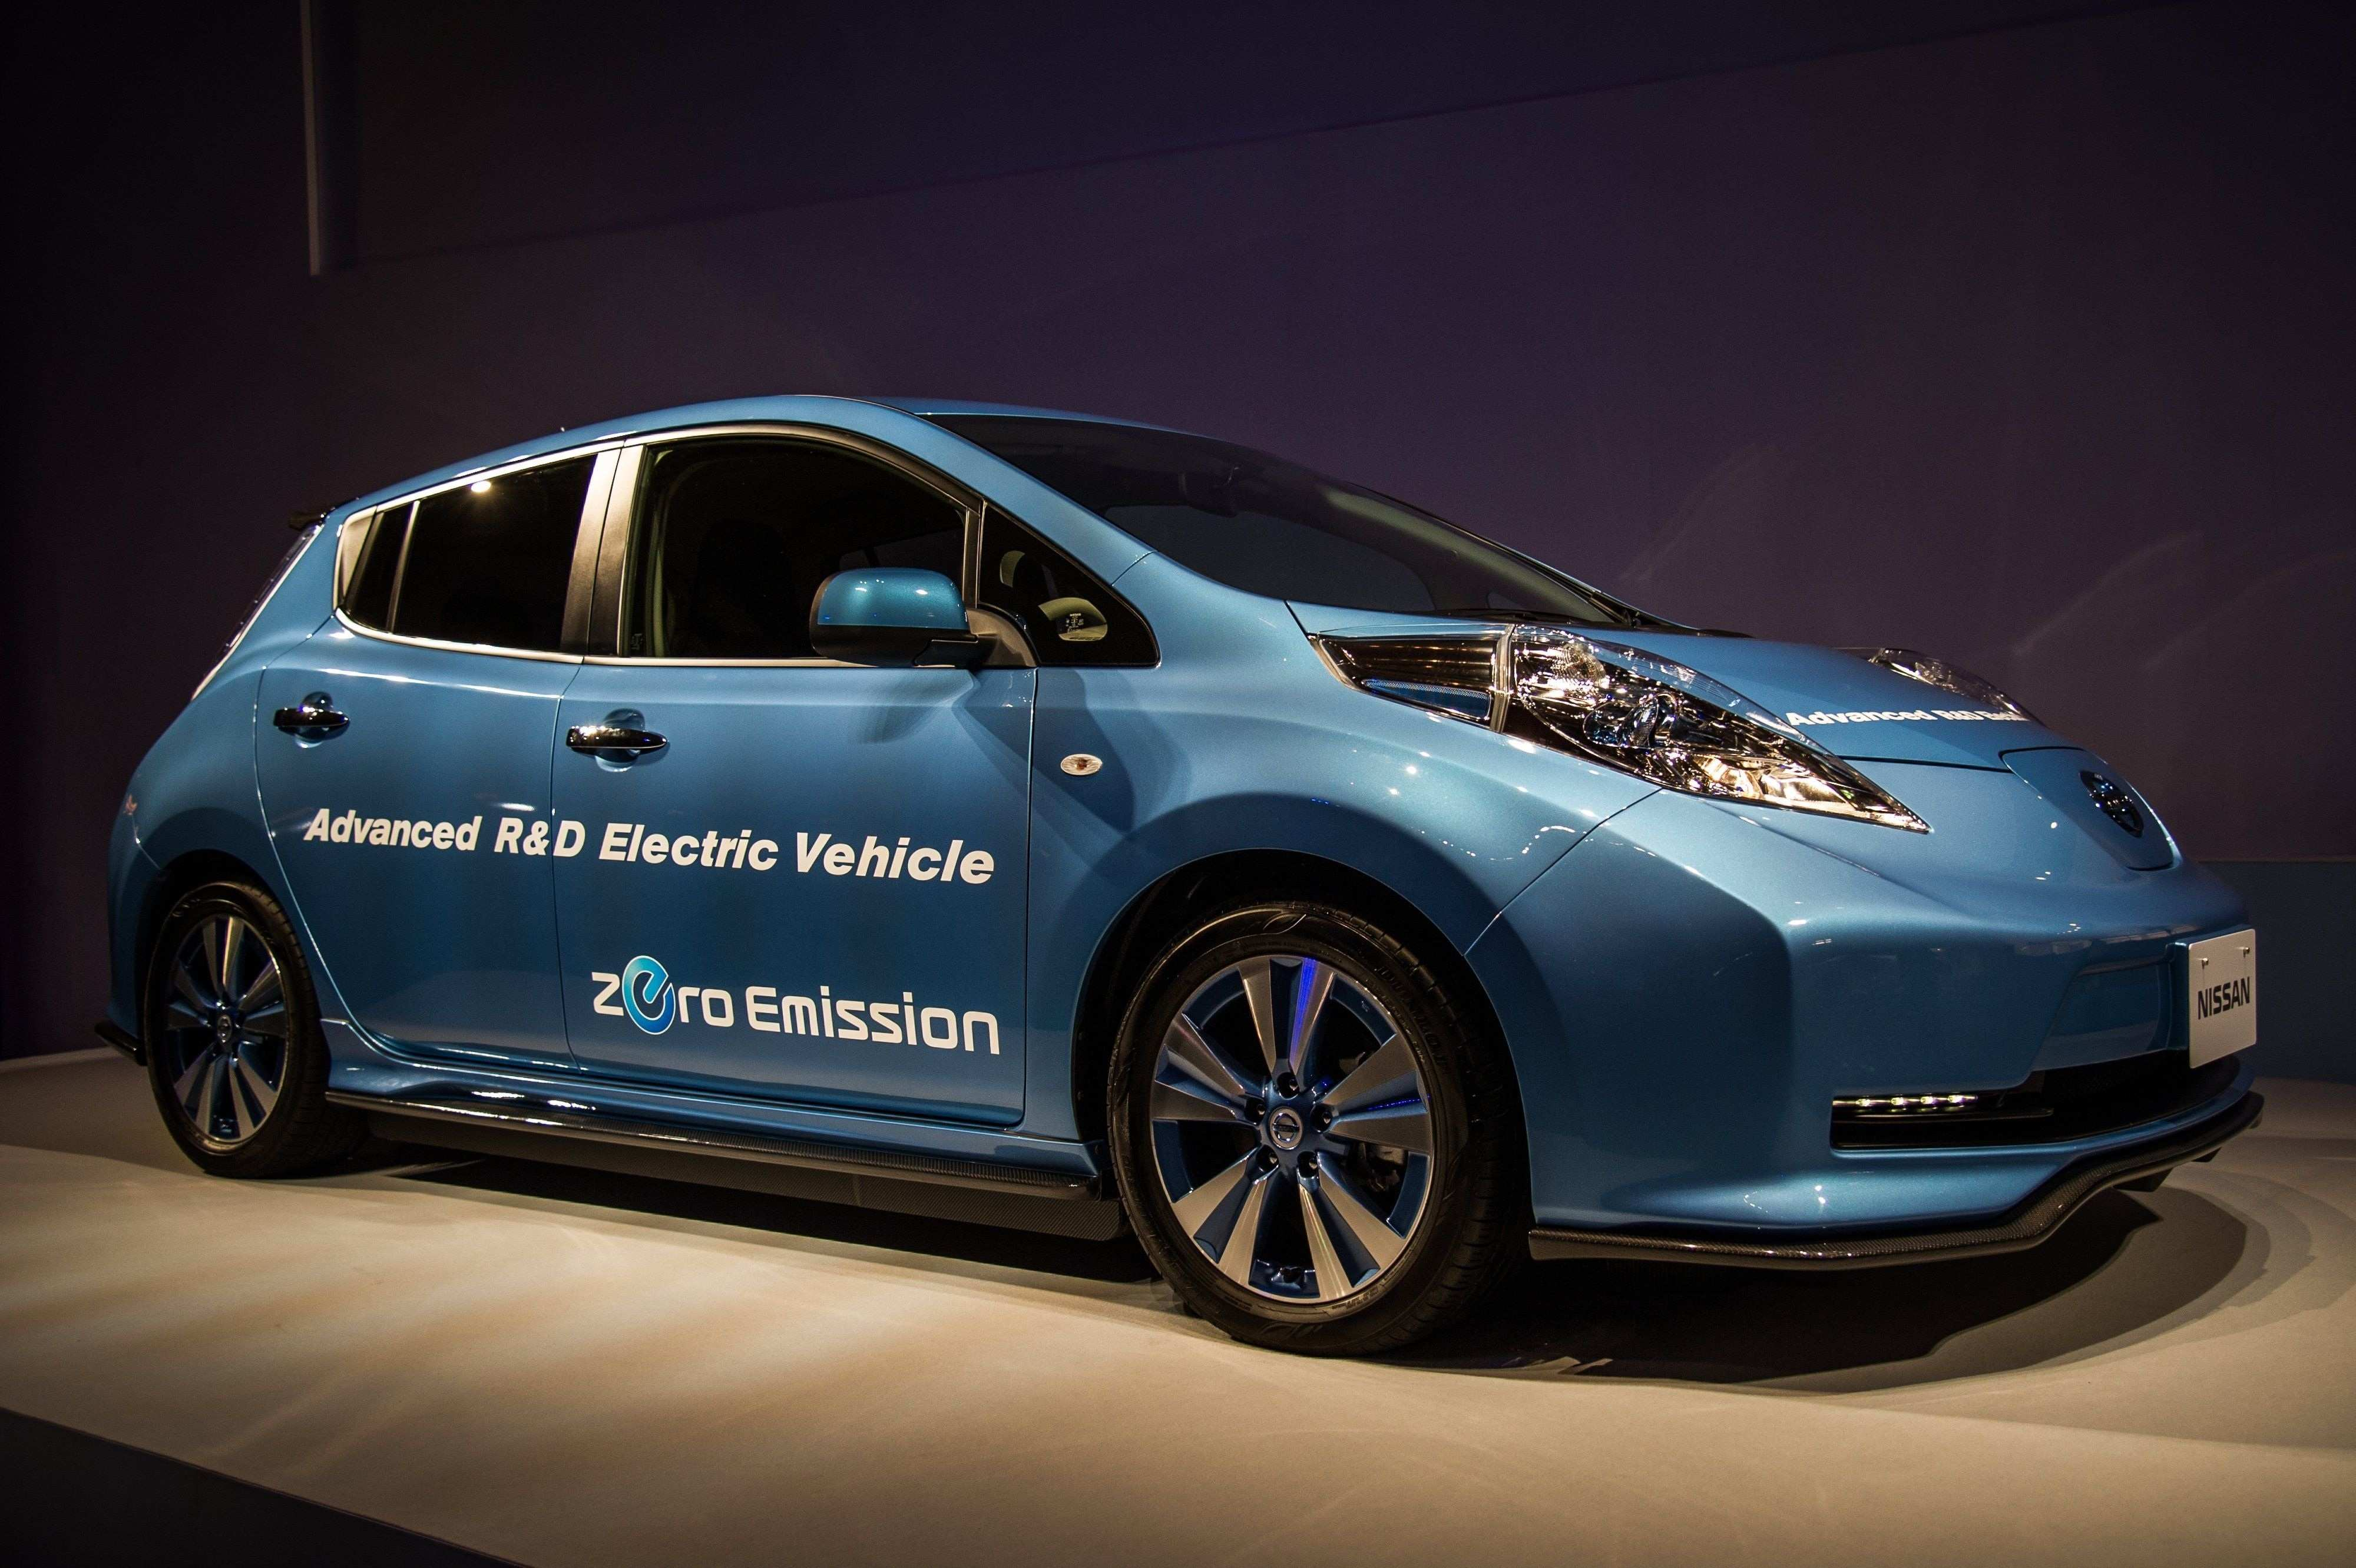 83 The 2020 Nissan Leaf Model